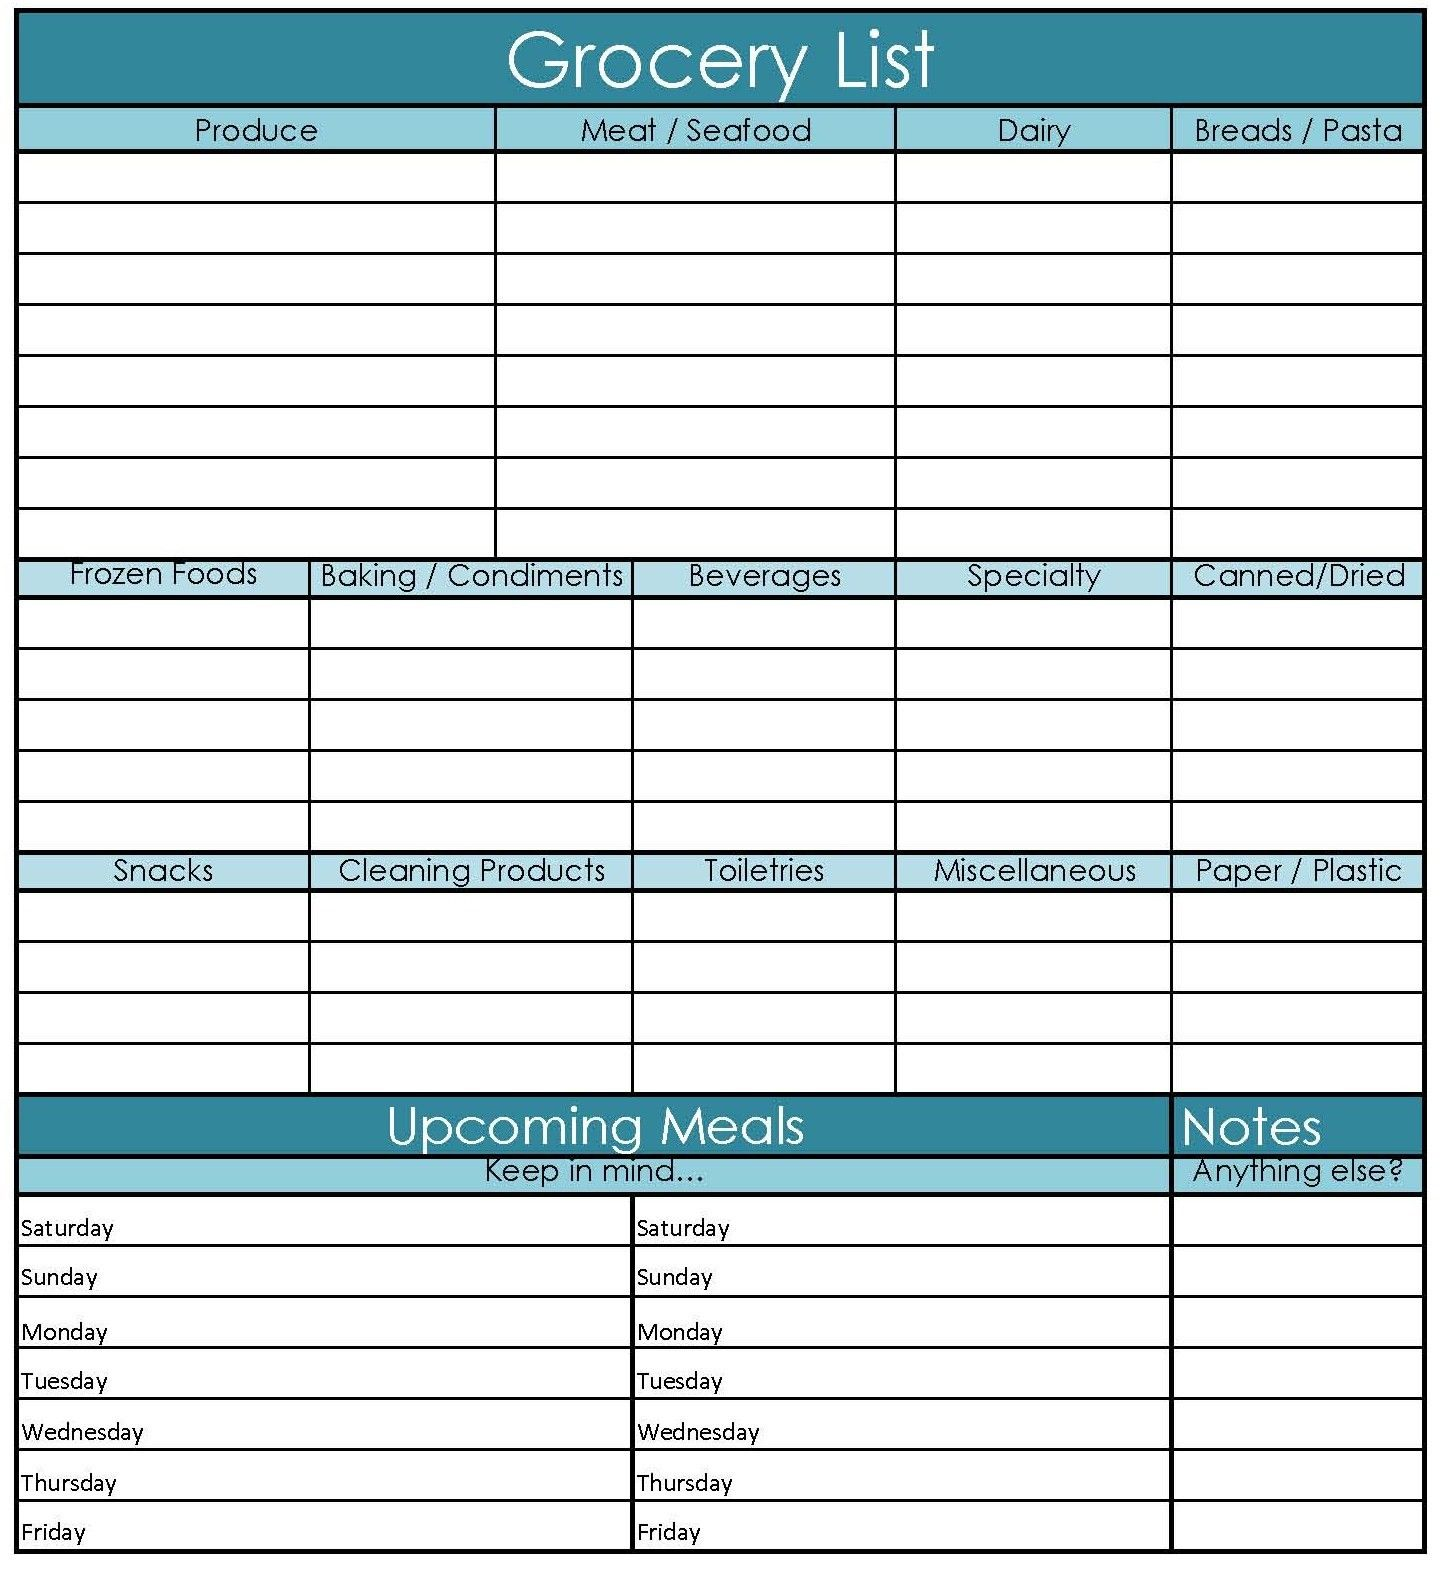 Printable Grocery Shopping List And Meal Planner.  Free Printable Grocery Shopping List Template